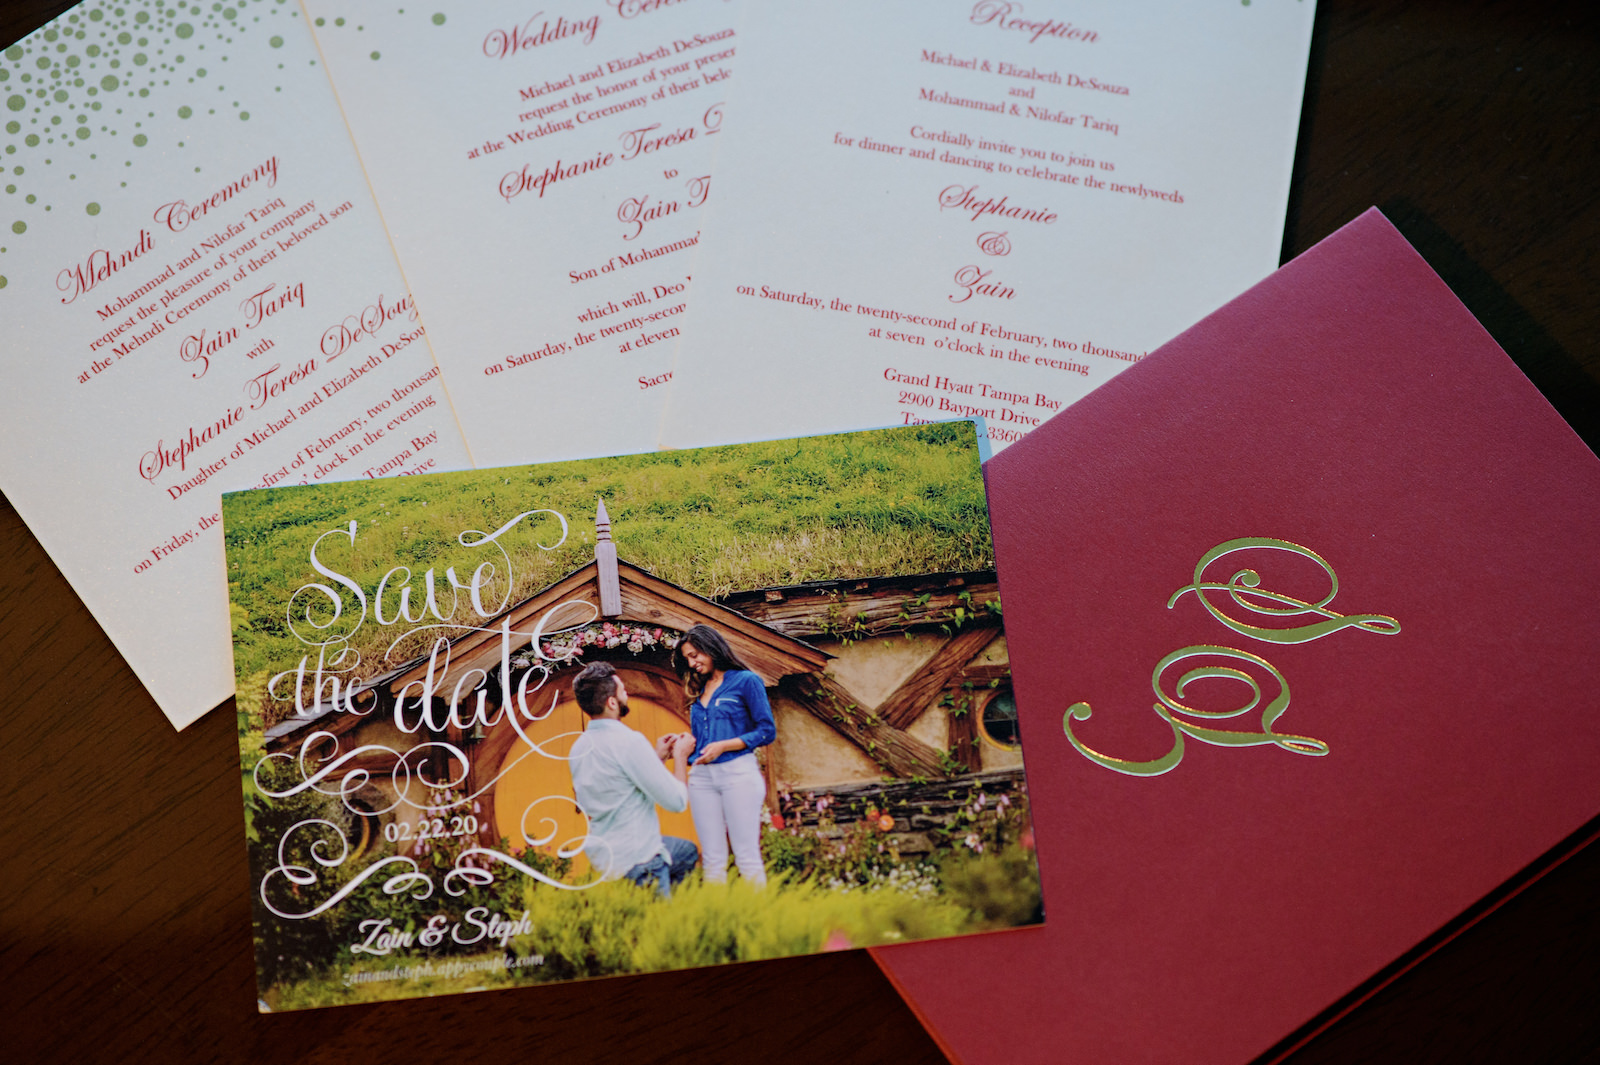 Florida Wedding Invitation Suite, Deep Red Stationary with Gold Foiling, Proposal Save The Date, Indian Mehndi Ceremony